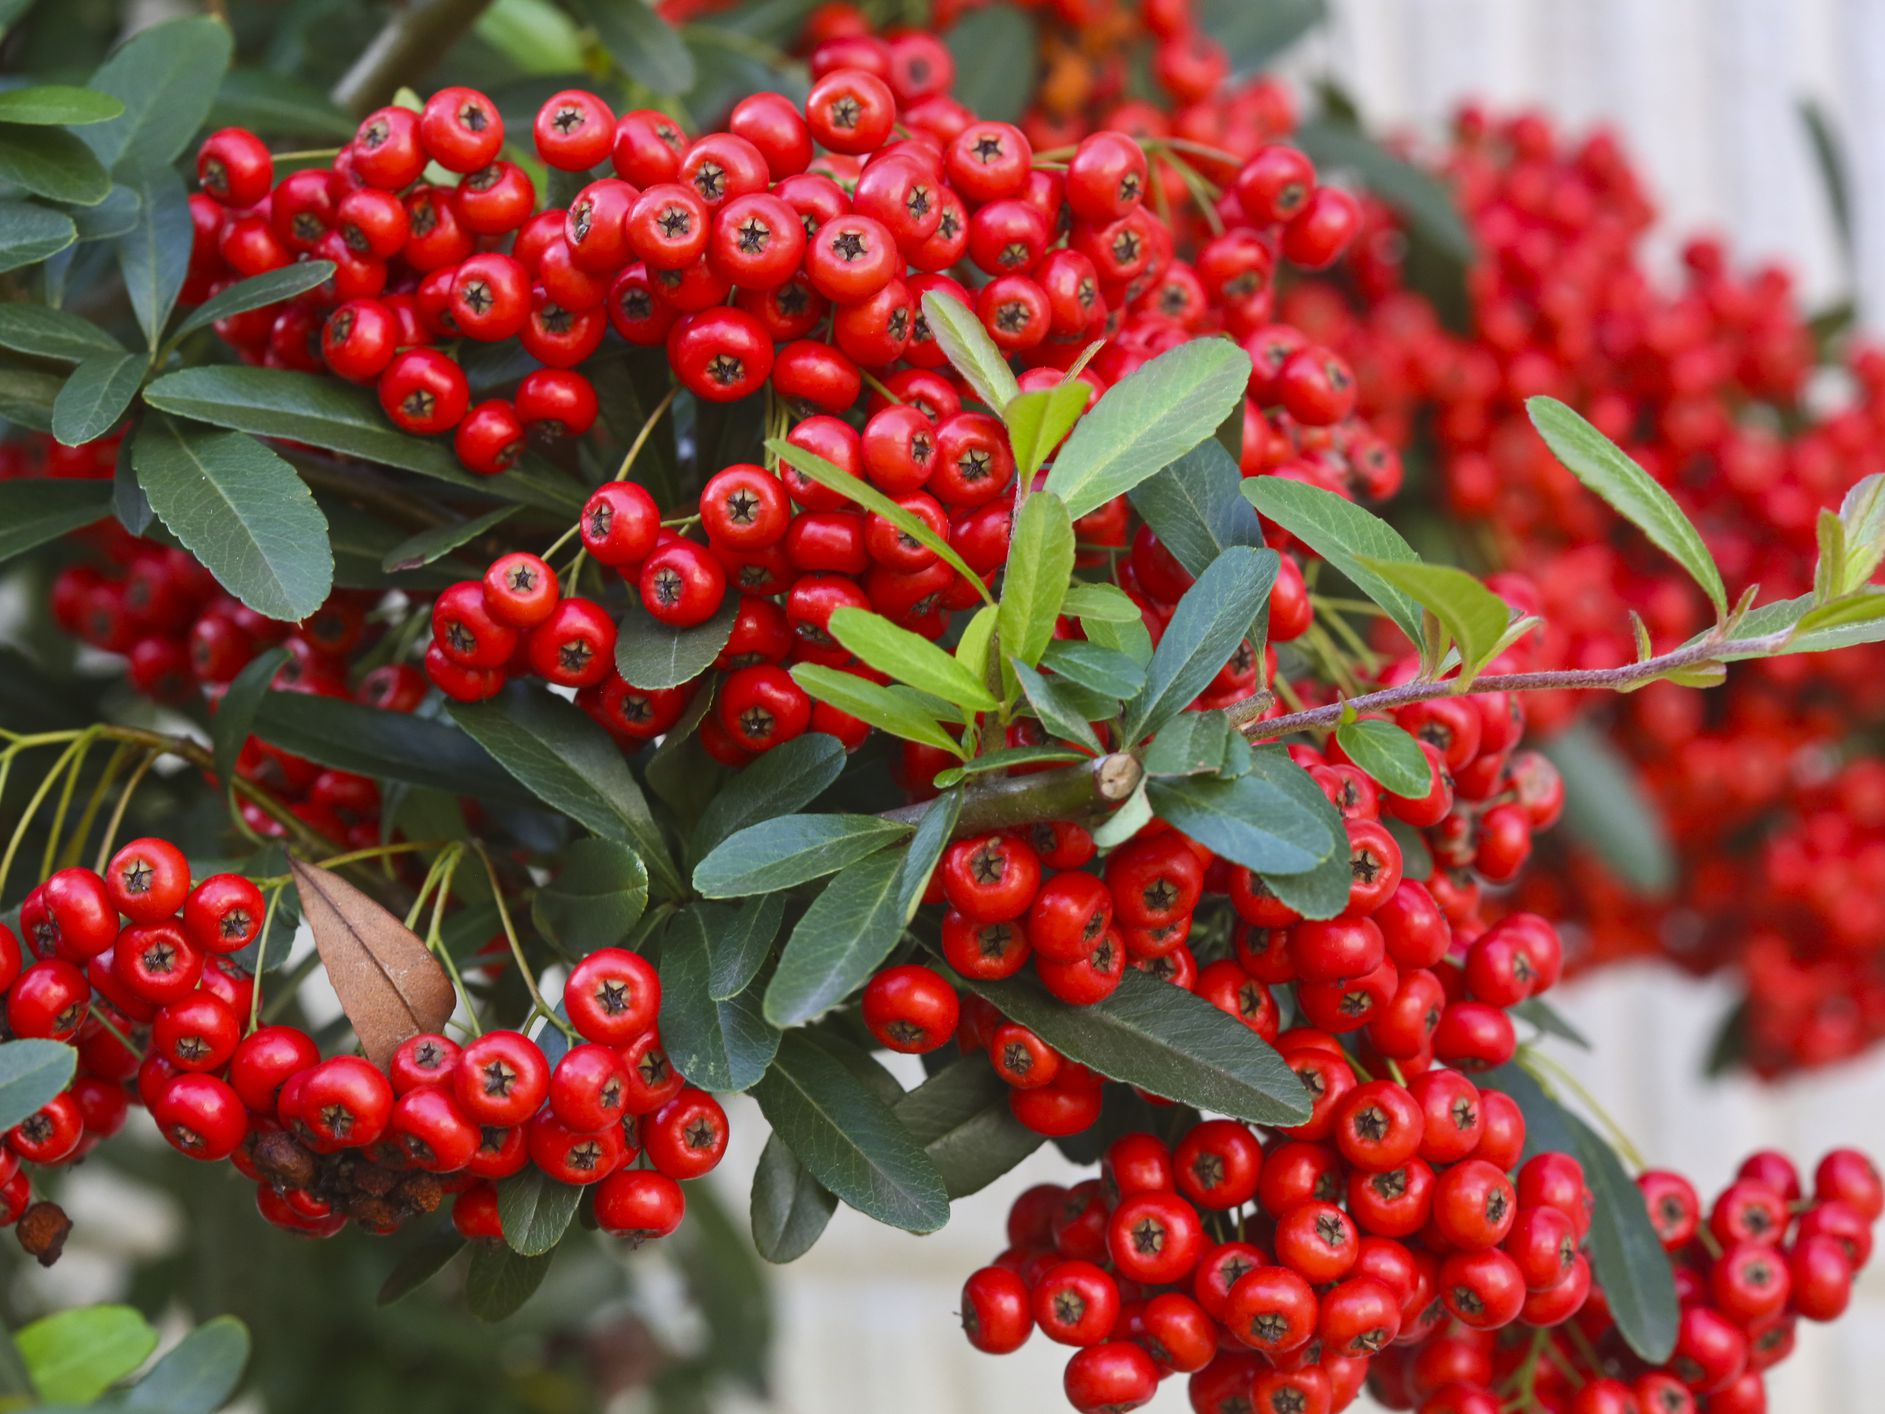 Red Berries Market Boosting the Growth Worldwide | Ocean Spray Cranberry, SunOpta, Hortex Group